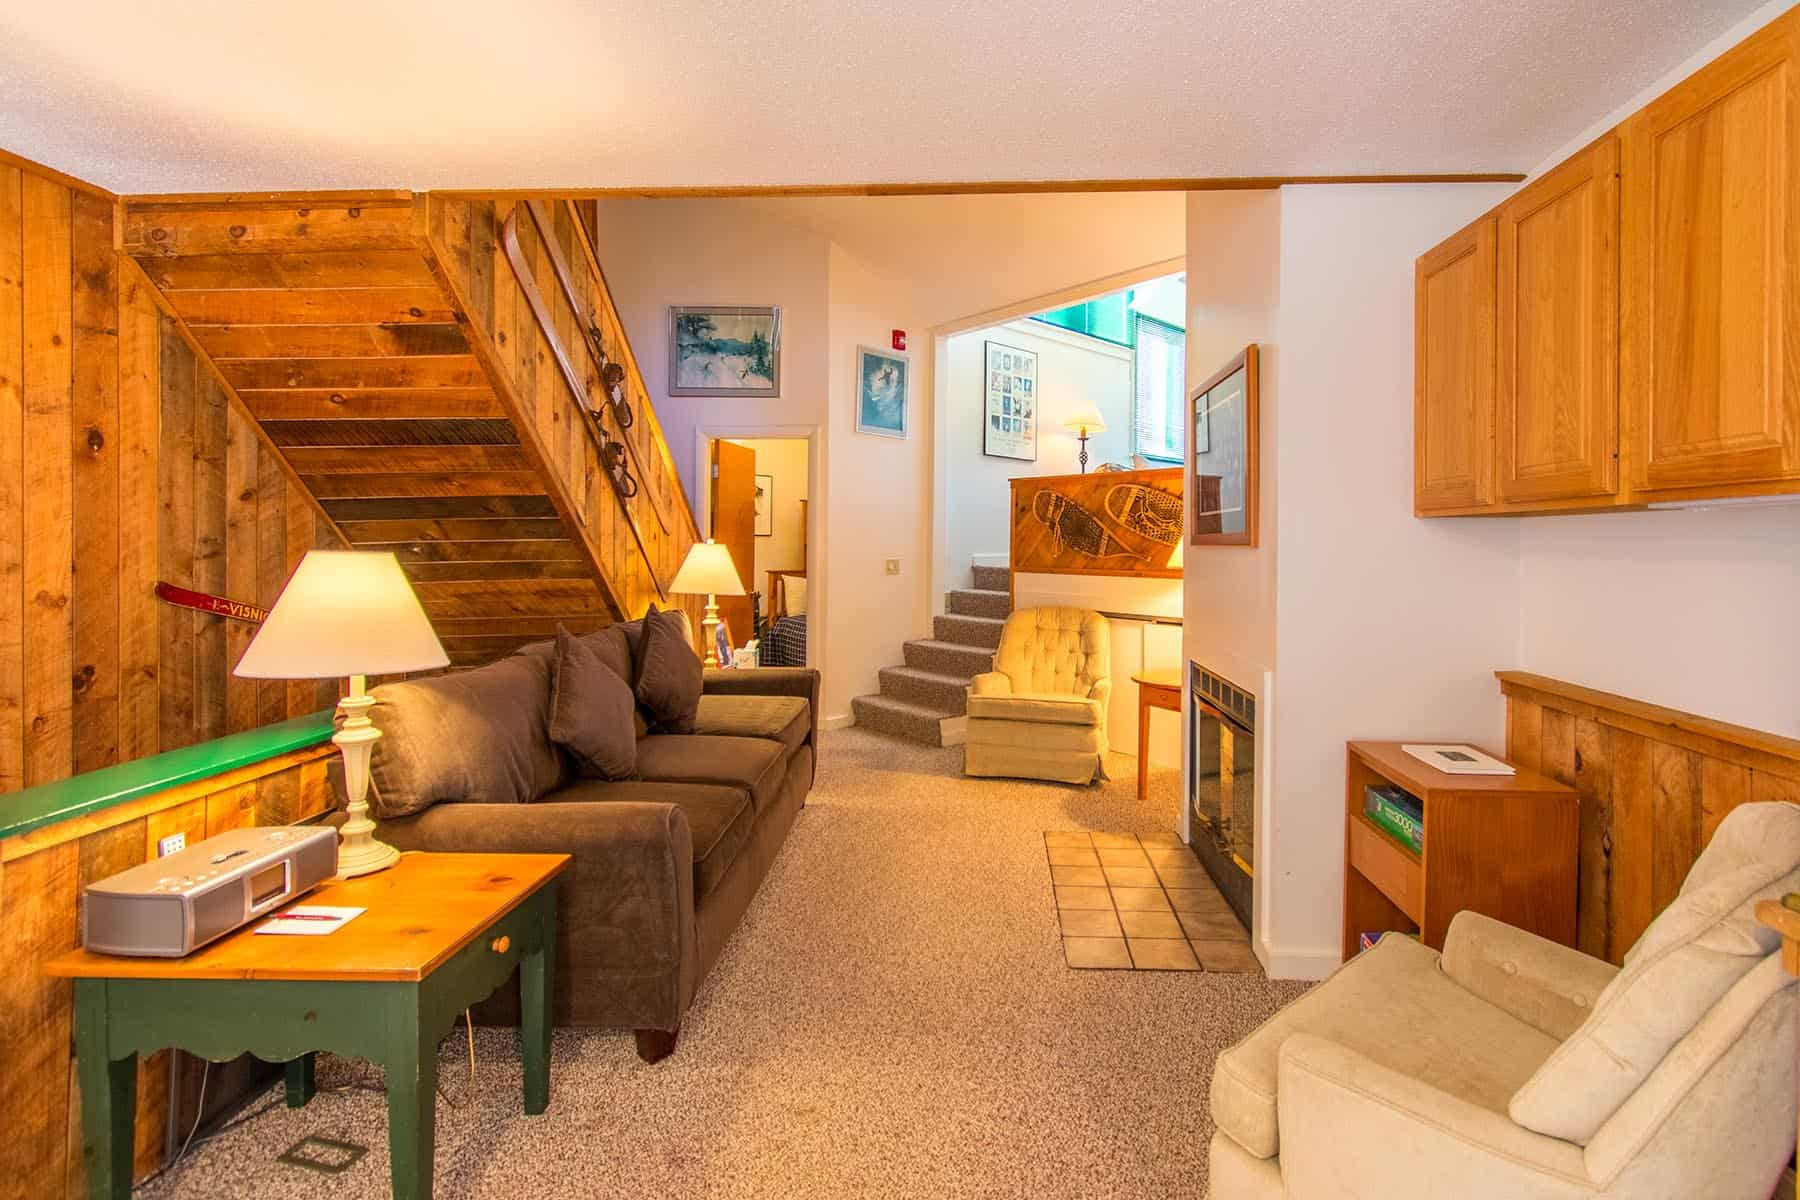 3 bedroom slopeside